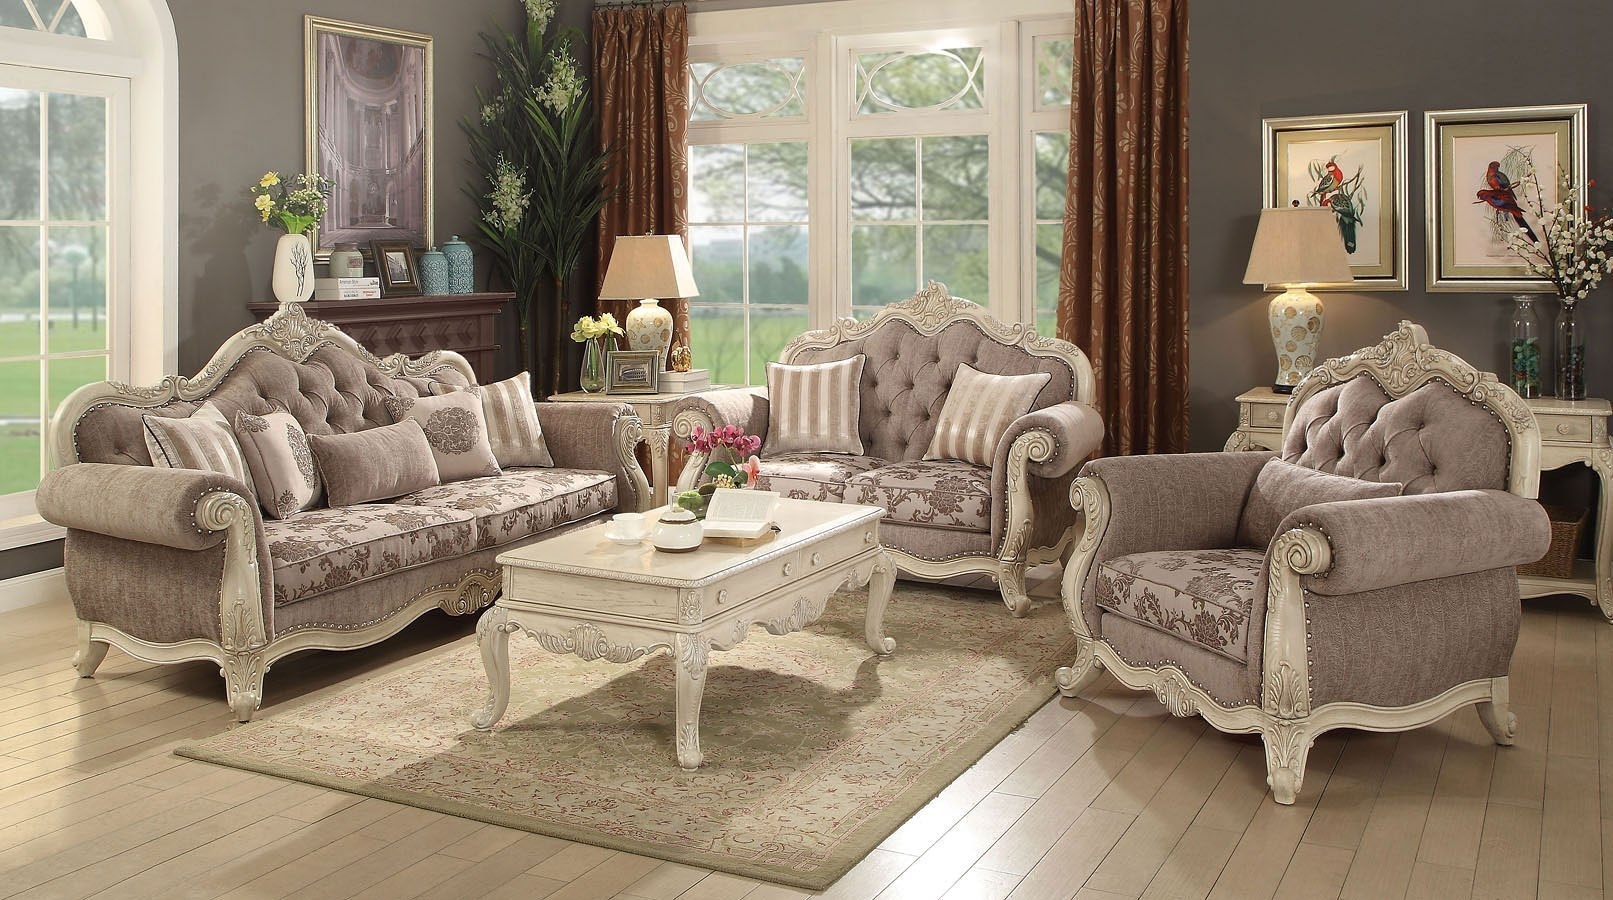 Ragenardus living room set antique white acme furniture - Antique living room furniture sets ...